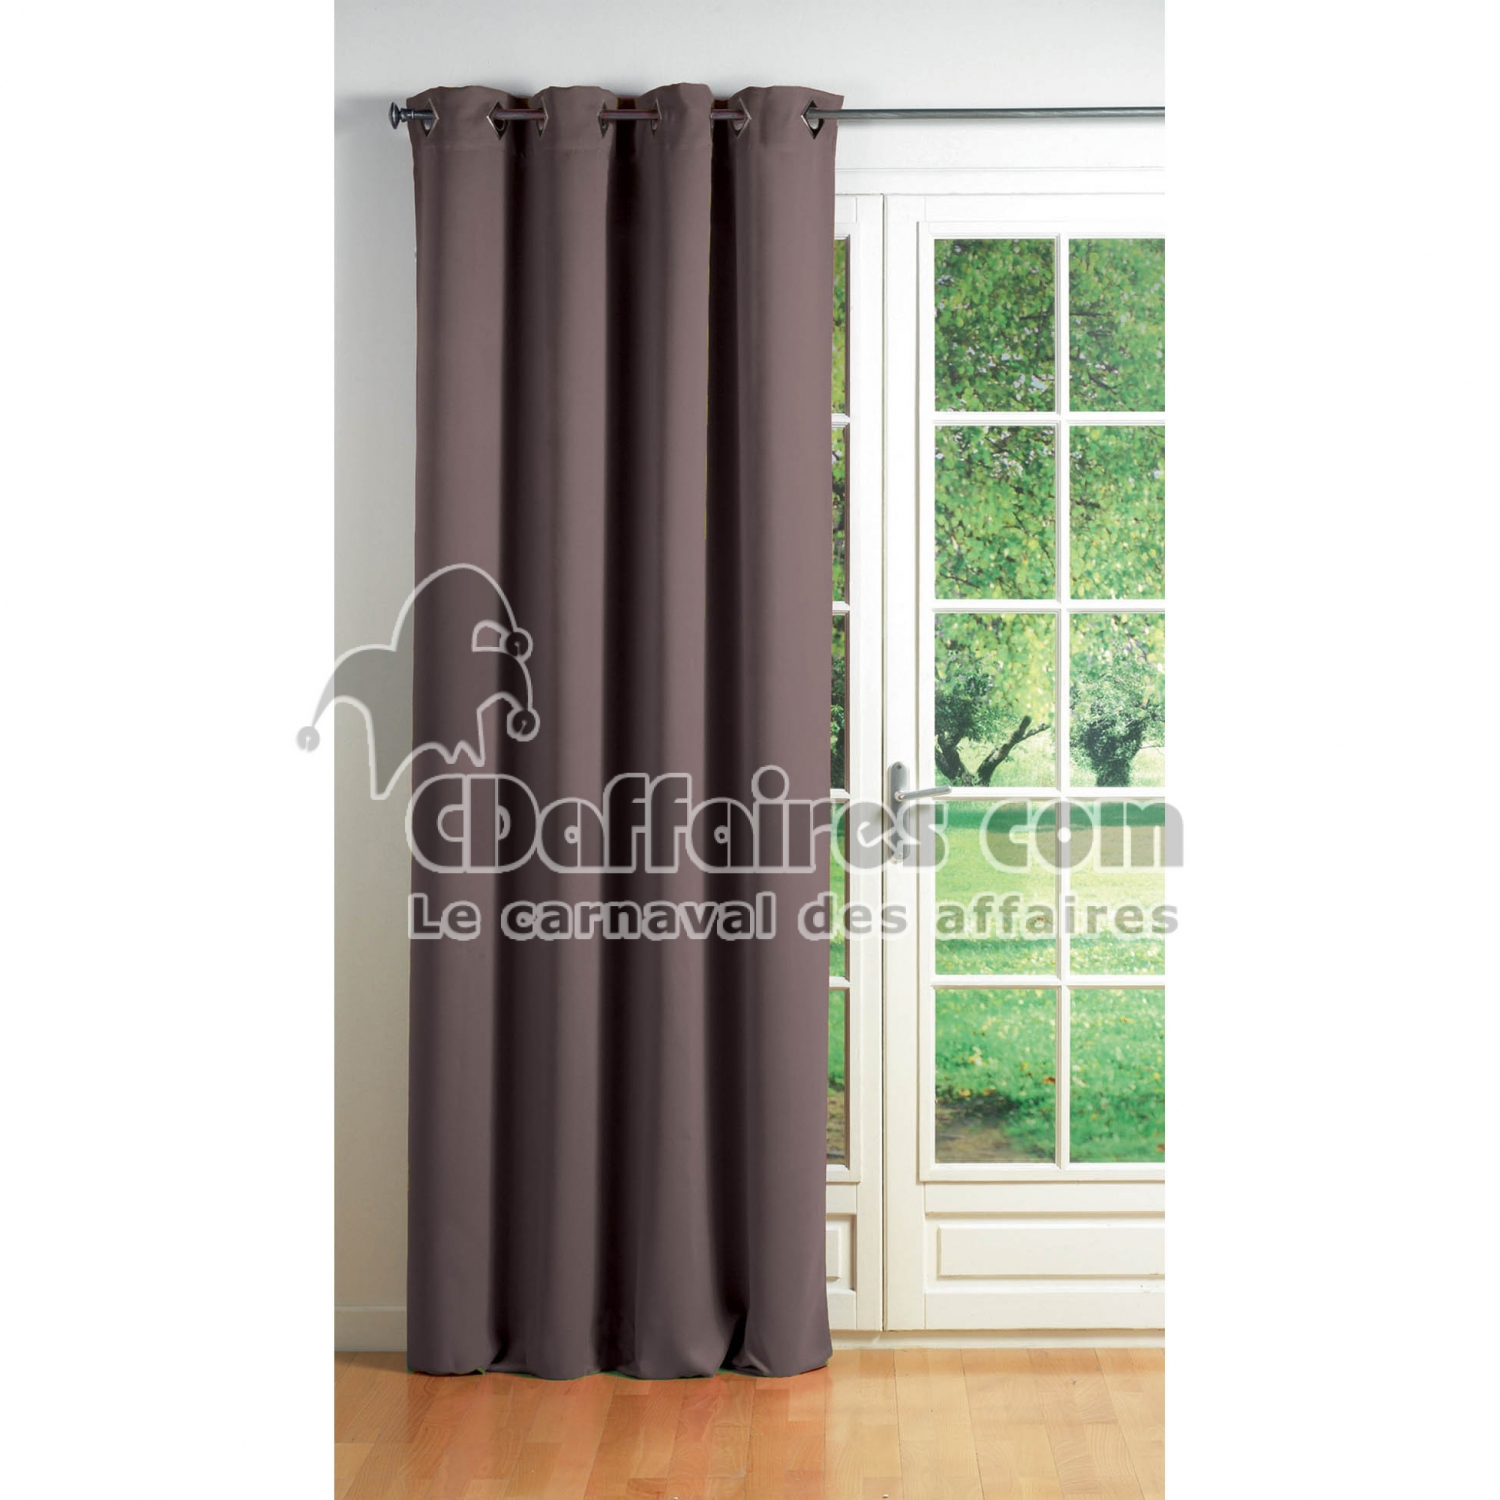 Rideau Taupe Opaque Rideau A Oeillets Carres 140 X 260 Cm Occultant Uni Cocoon Taupe Cdaffaires